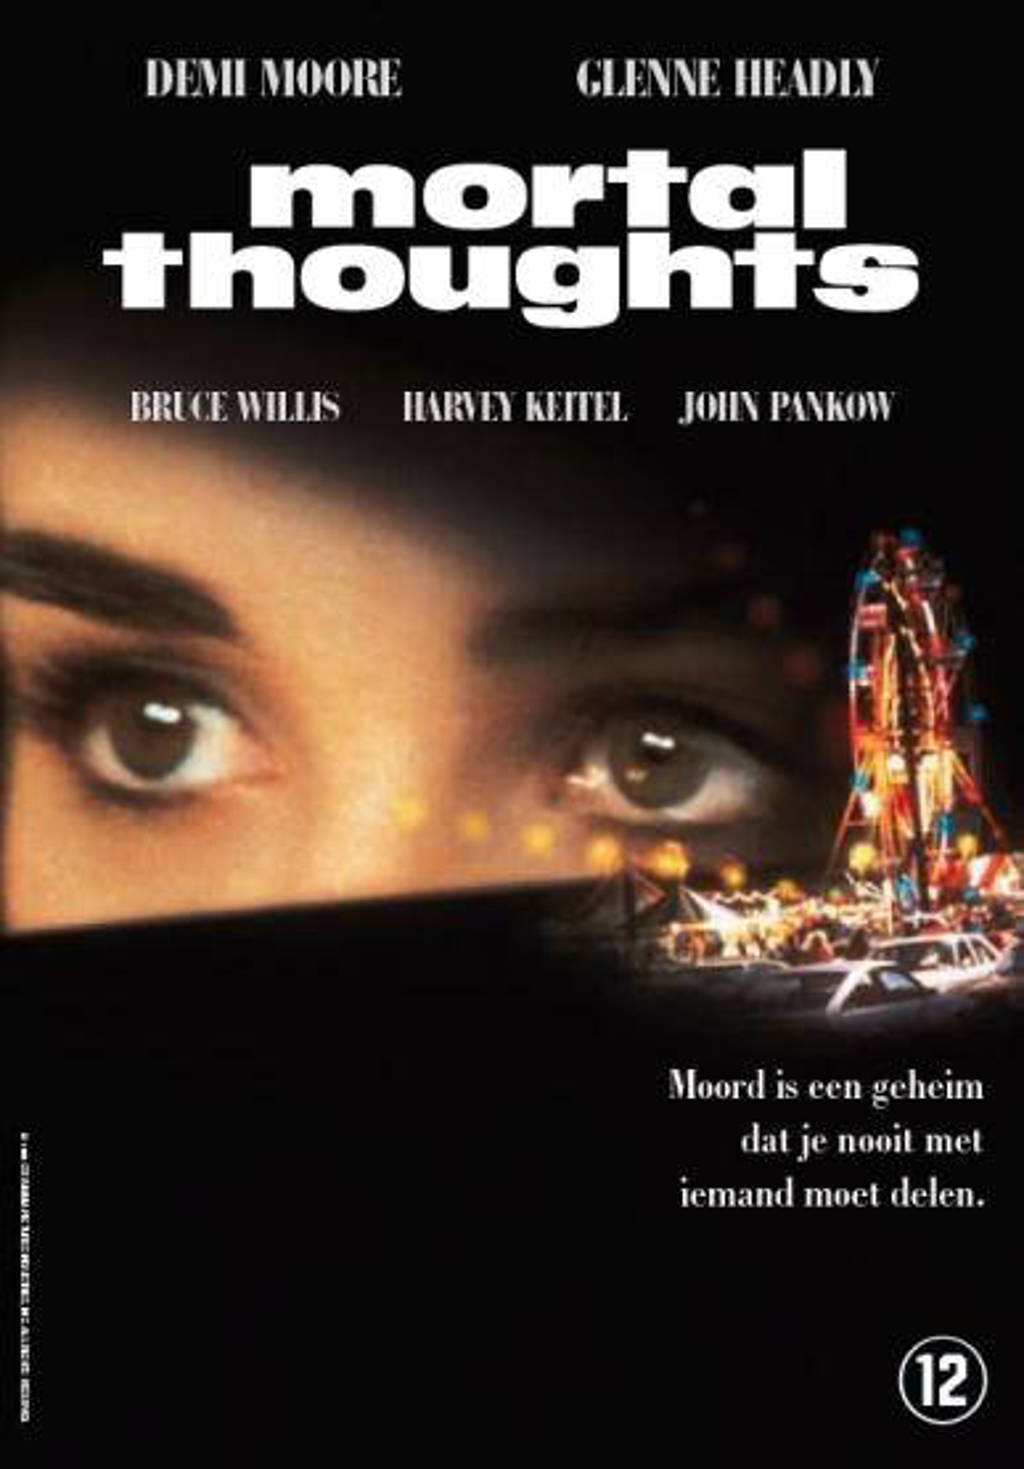 Mortal thoughts (DVD)